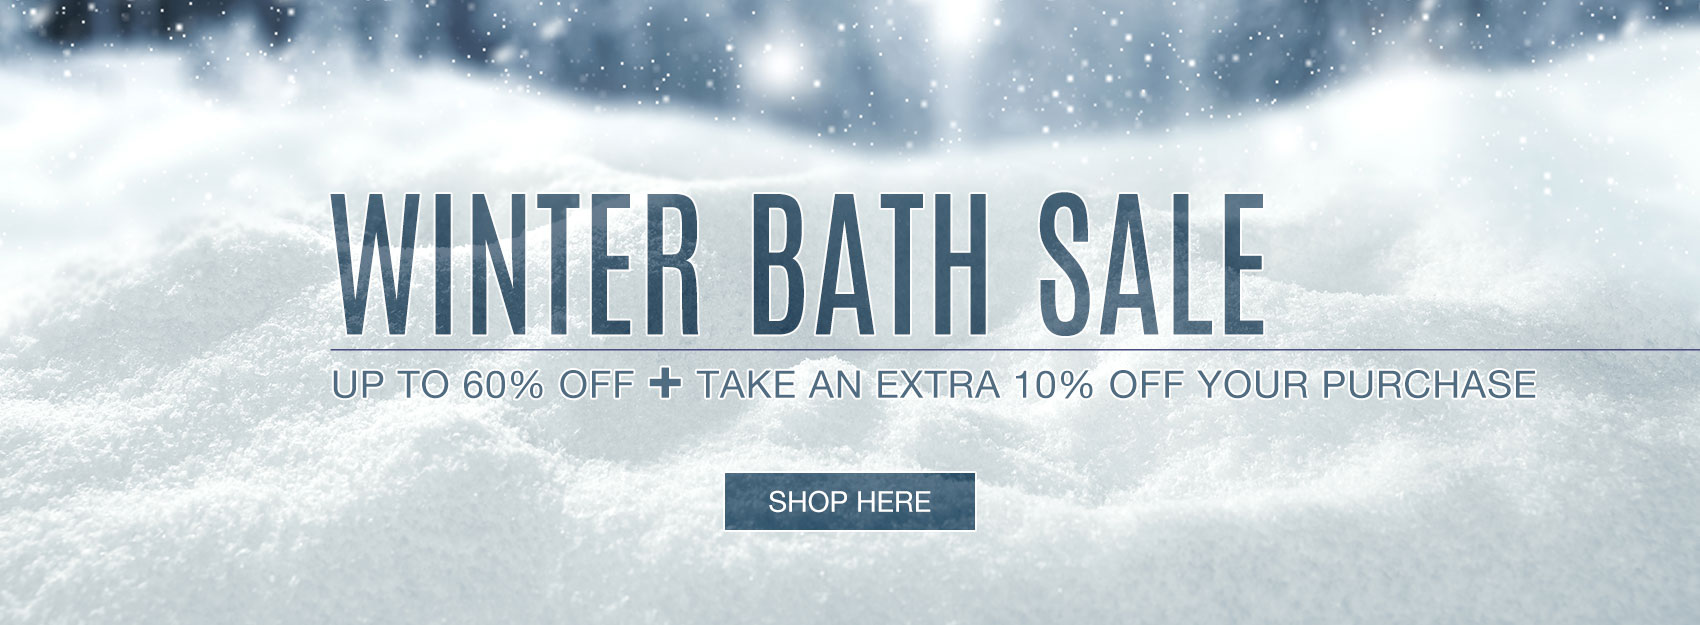 Save an extra 10% on all items during our Winter Bathroom Sale